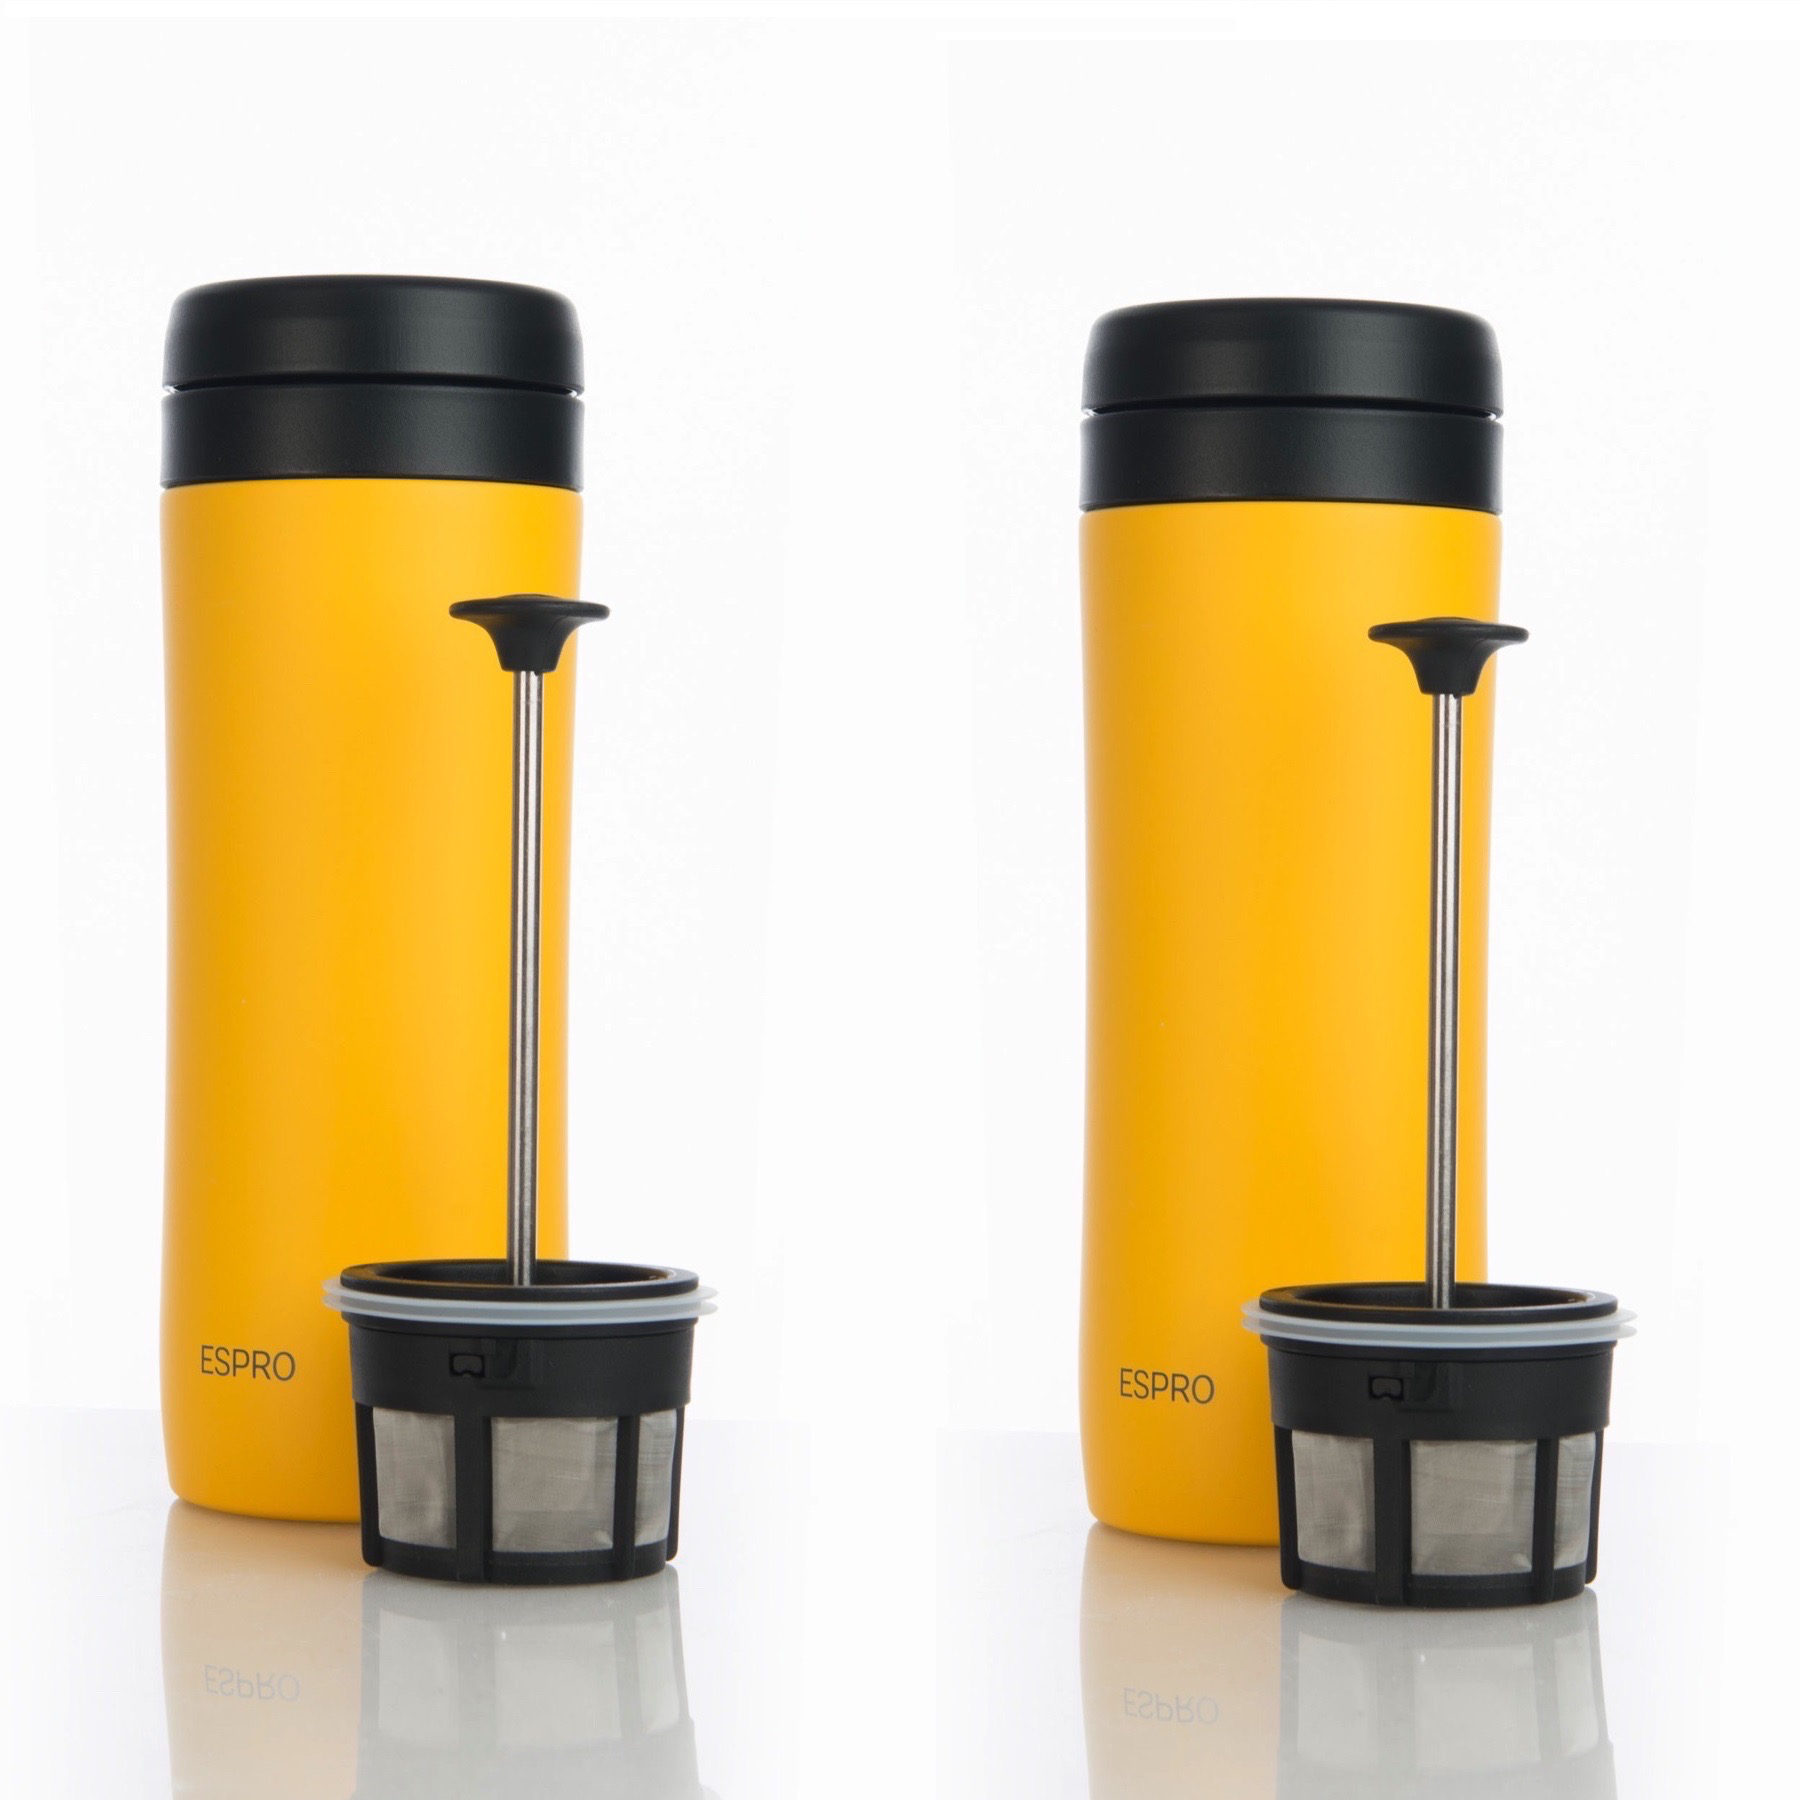 9e6e3f71e6e Details about Espro Travel Press Sunshine Yellow w/ Coffee Filter French  Press Mug (2-Pack)